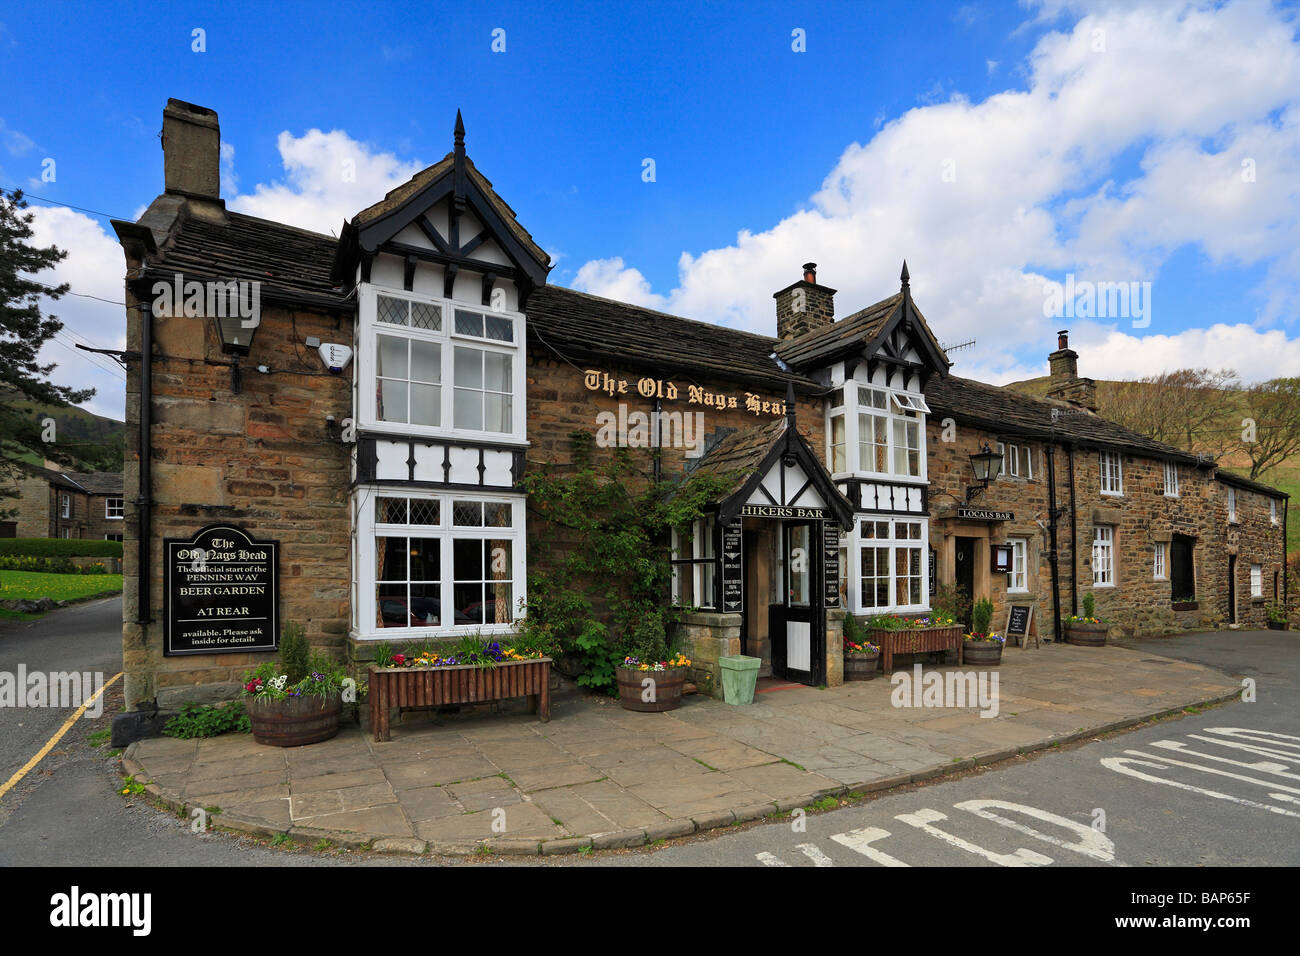 The Old Nags Head pub start of the Pennine Way Edale Derbyshire Peak District National Park England UK - Stock Image